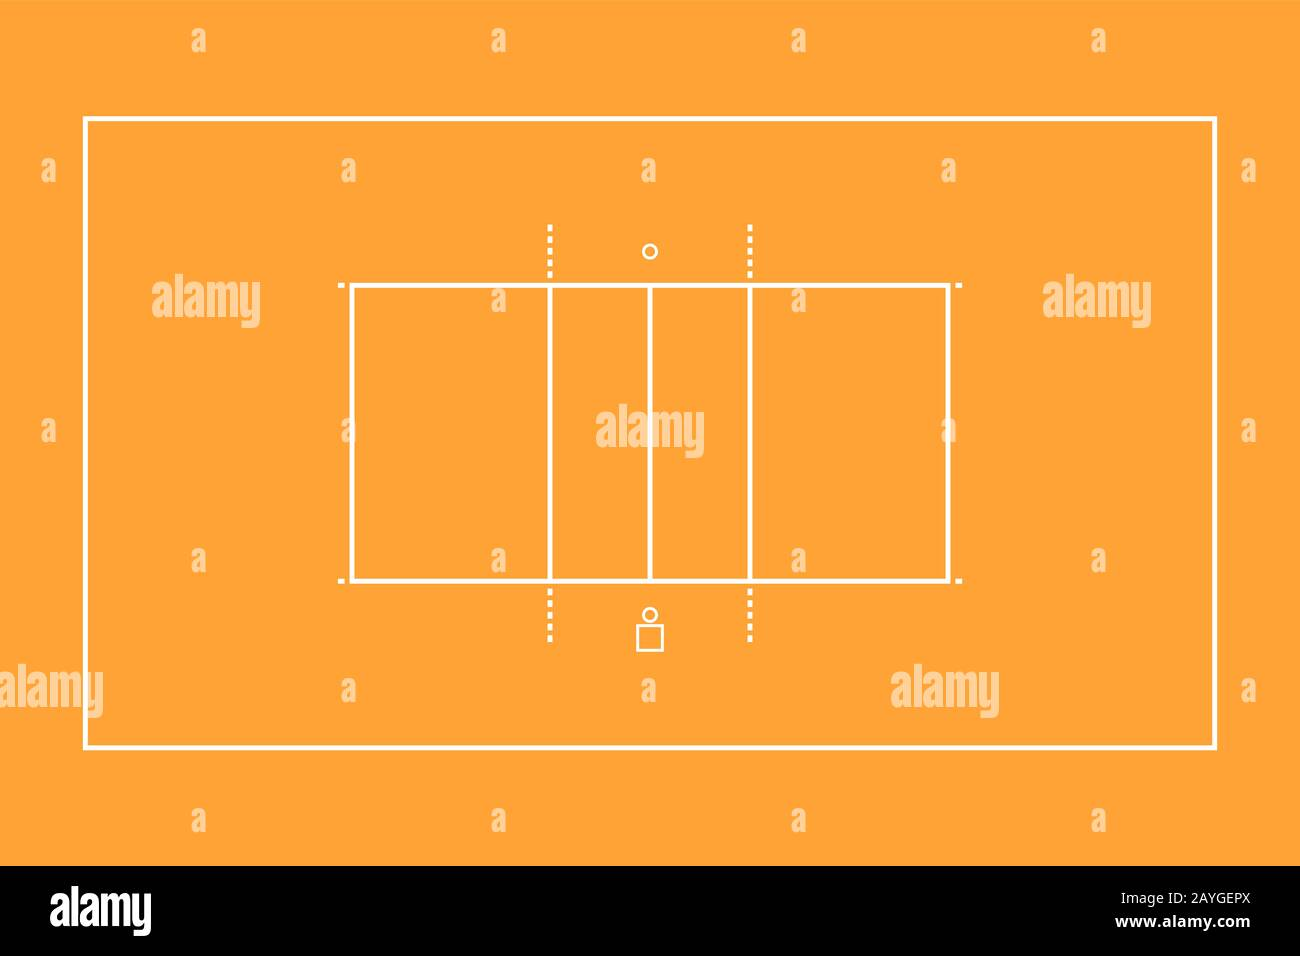 Illustration Of A Sports Volleyball Court Top View For Easy Use In Strategy Or Background White Marking Lines On Orange Flat Style Stock Photo Alamy